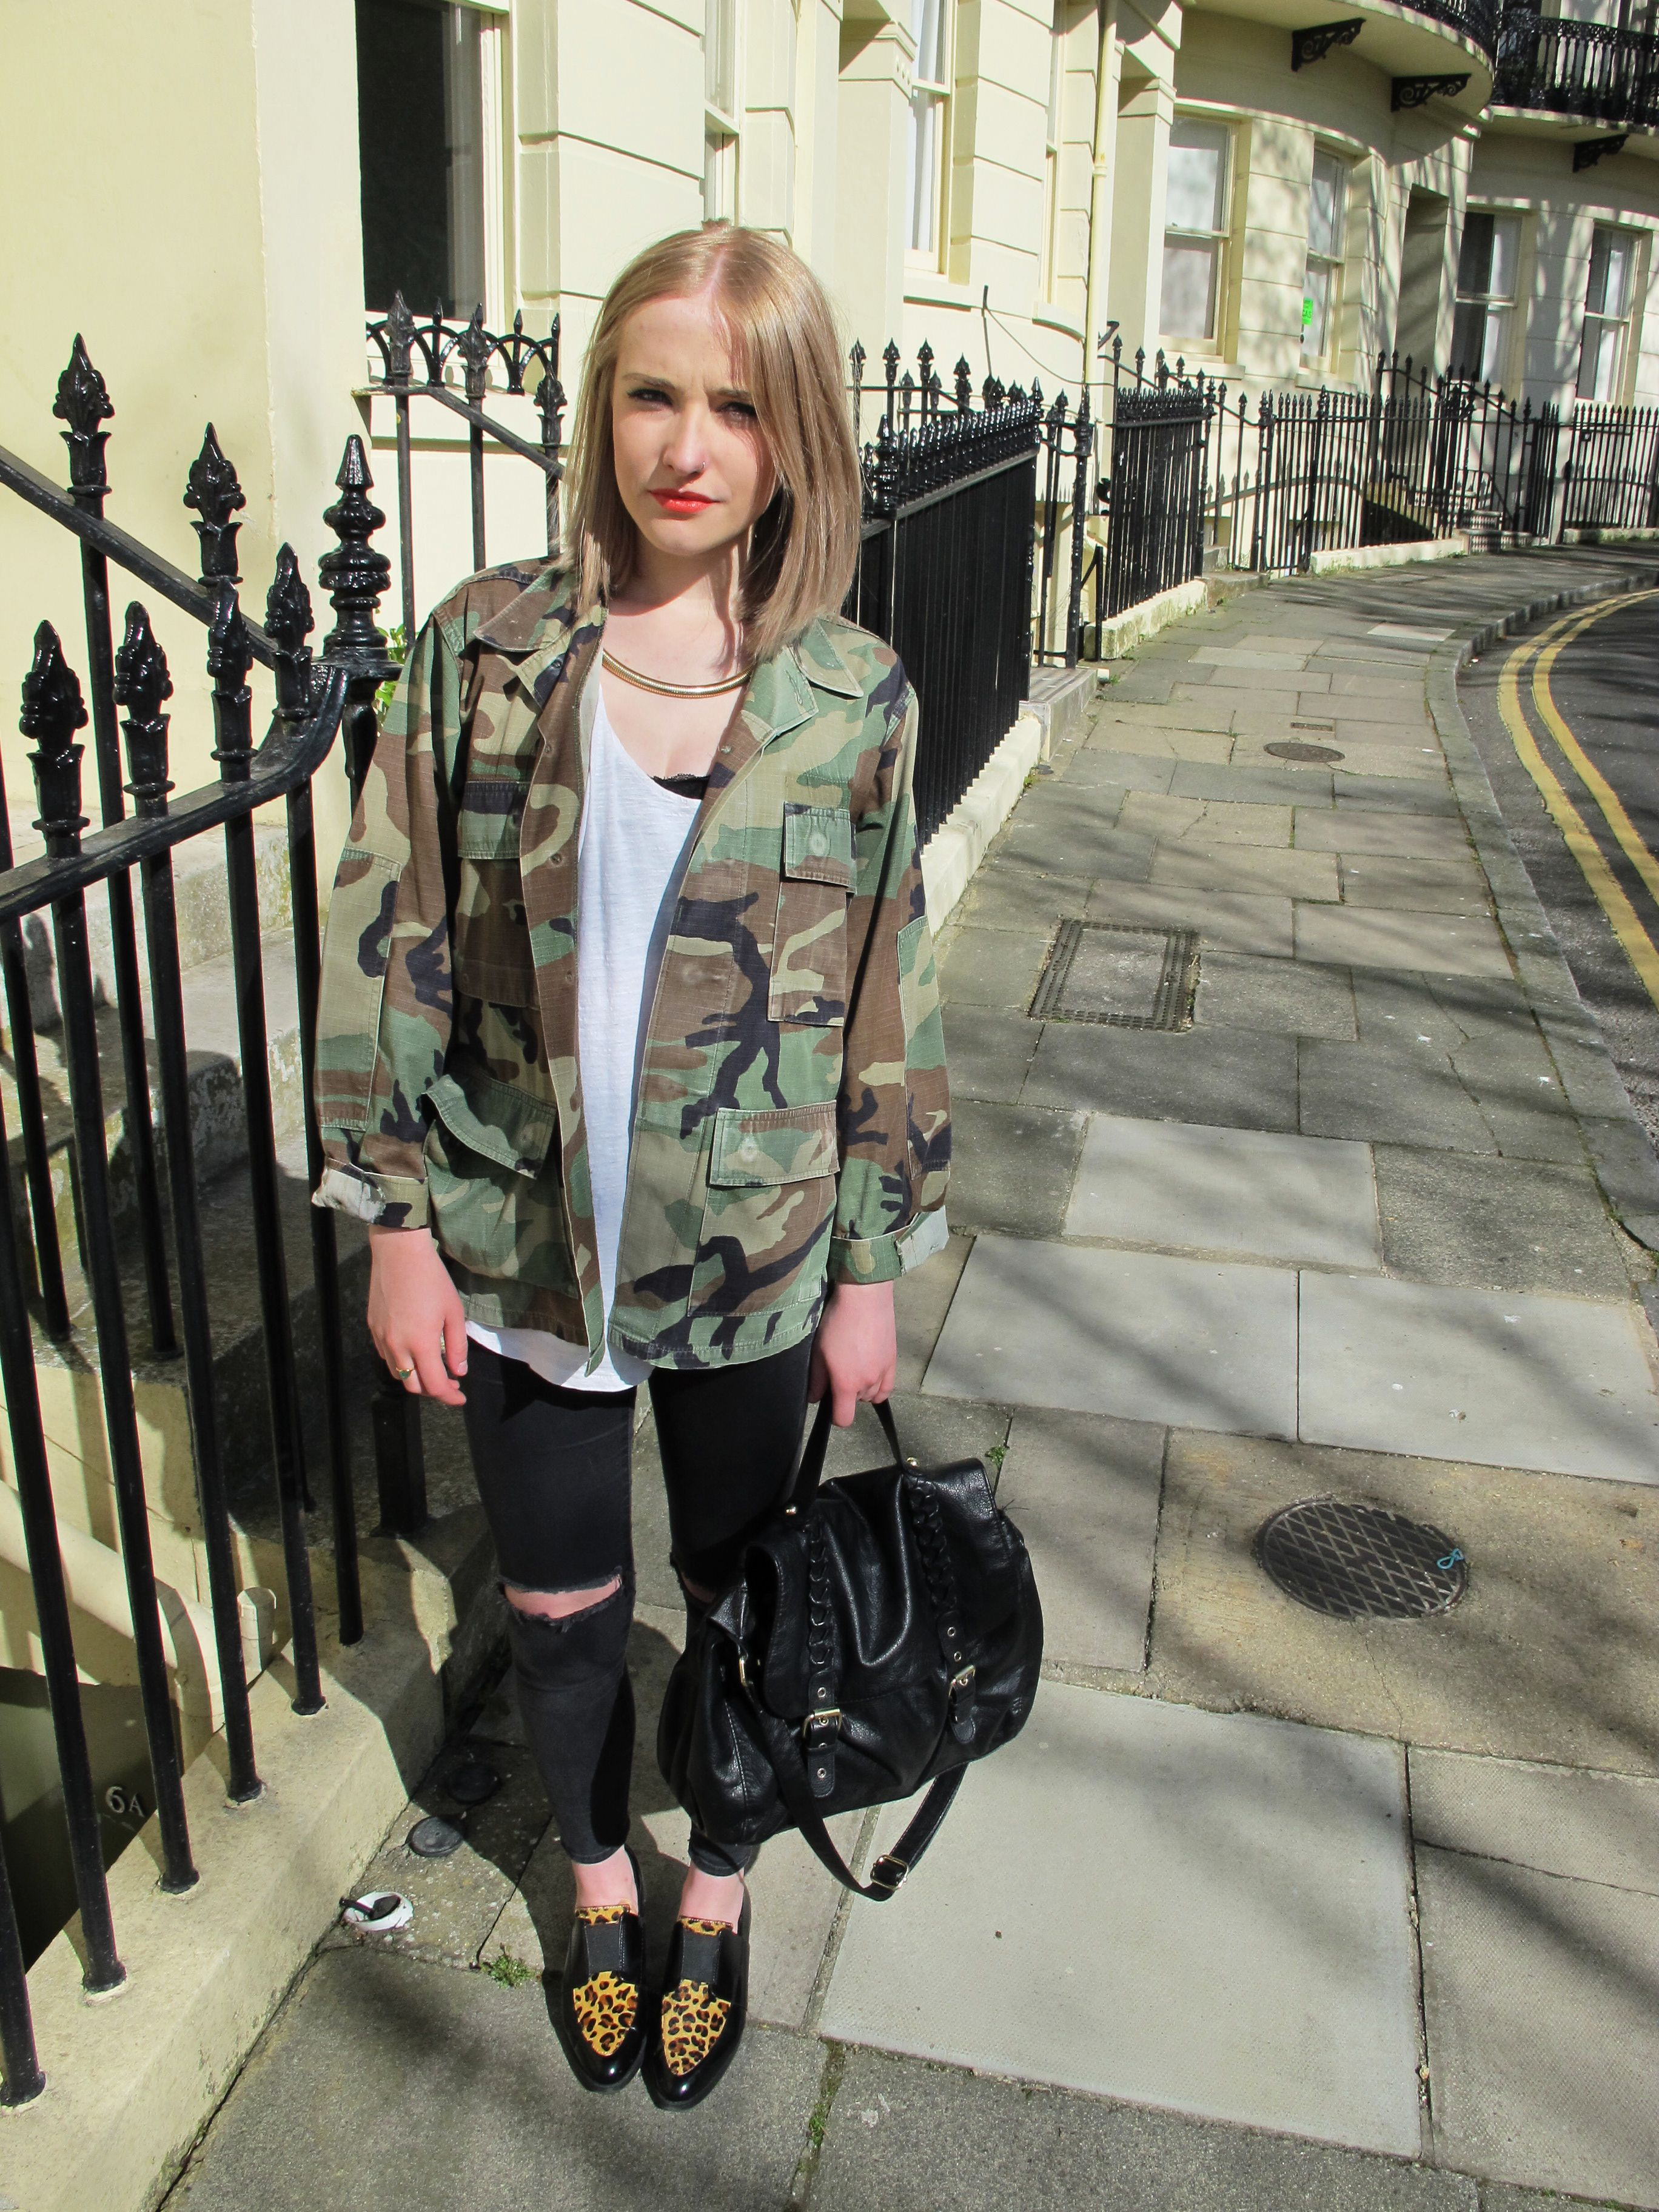 How to camouflage a wear print jacket forecasting to wear for spring in 2019